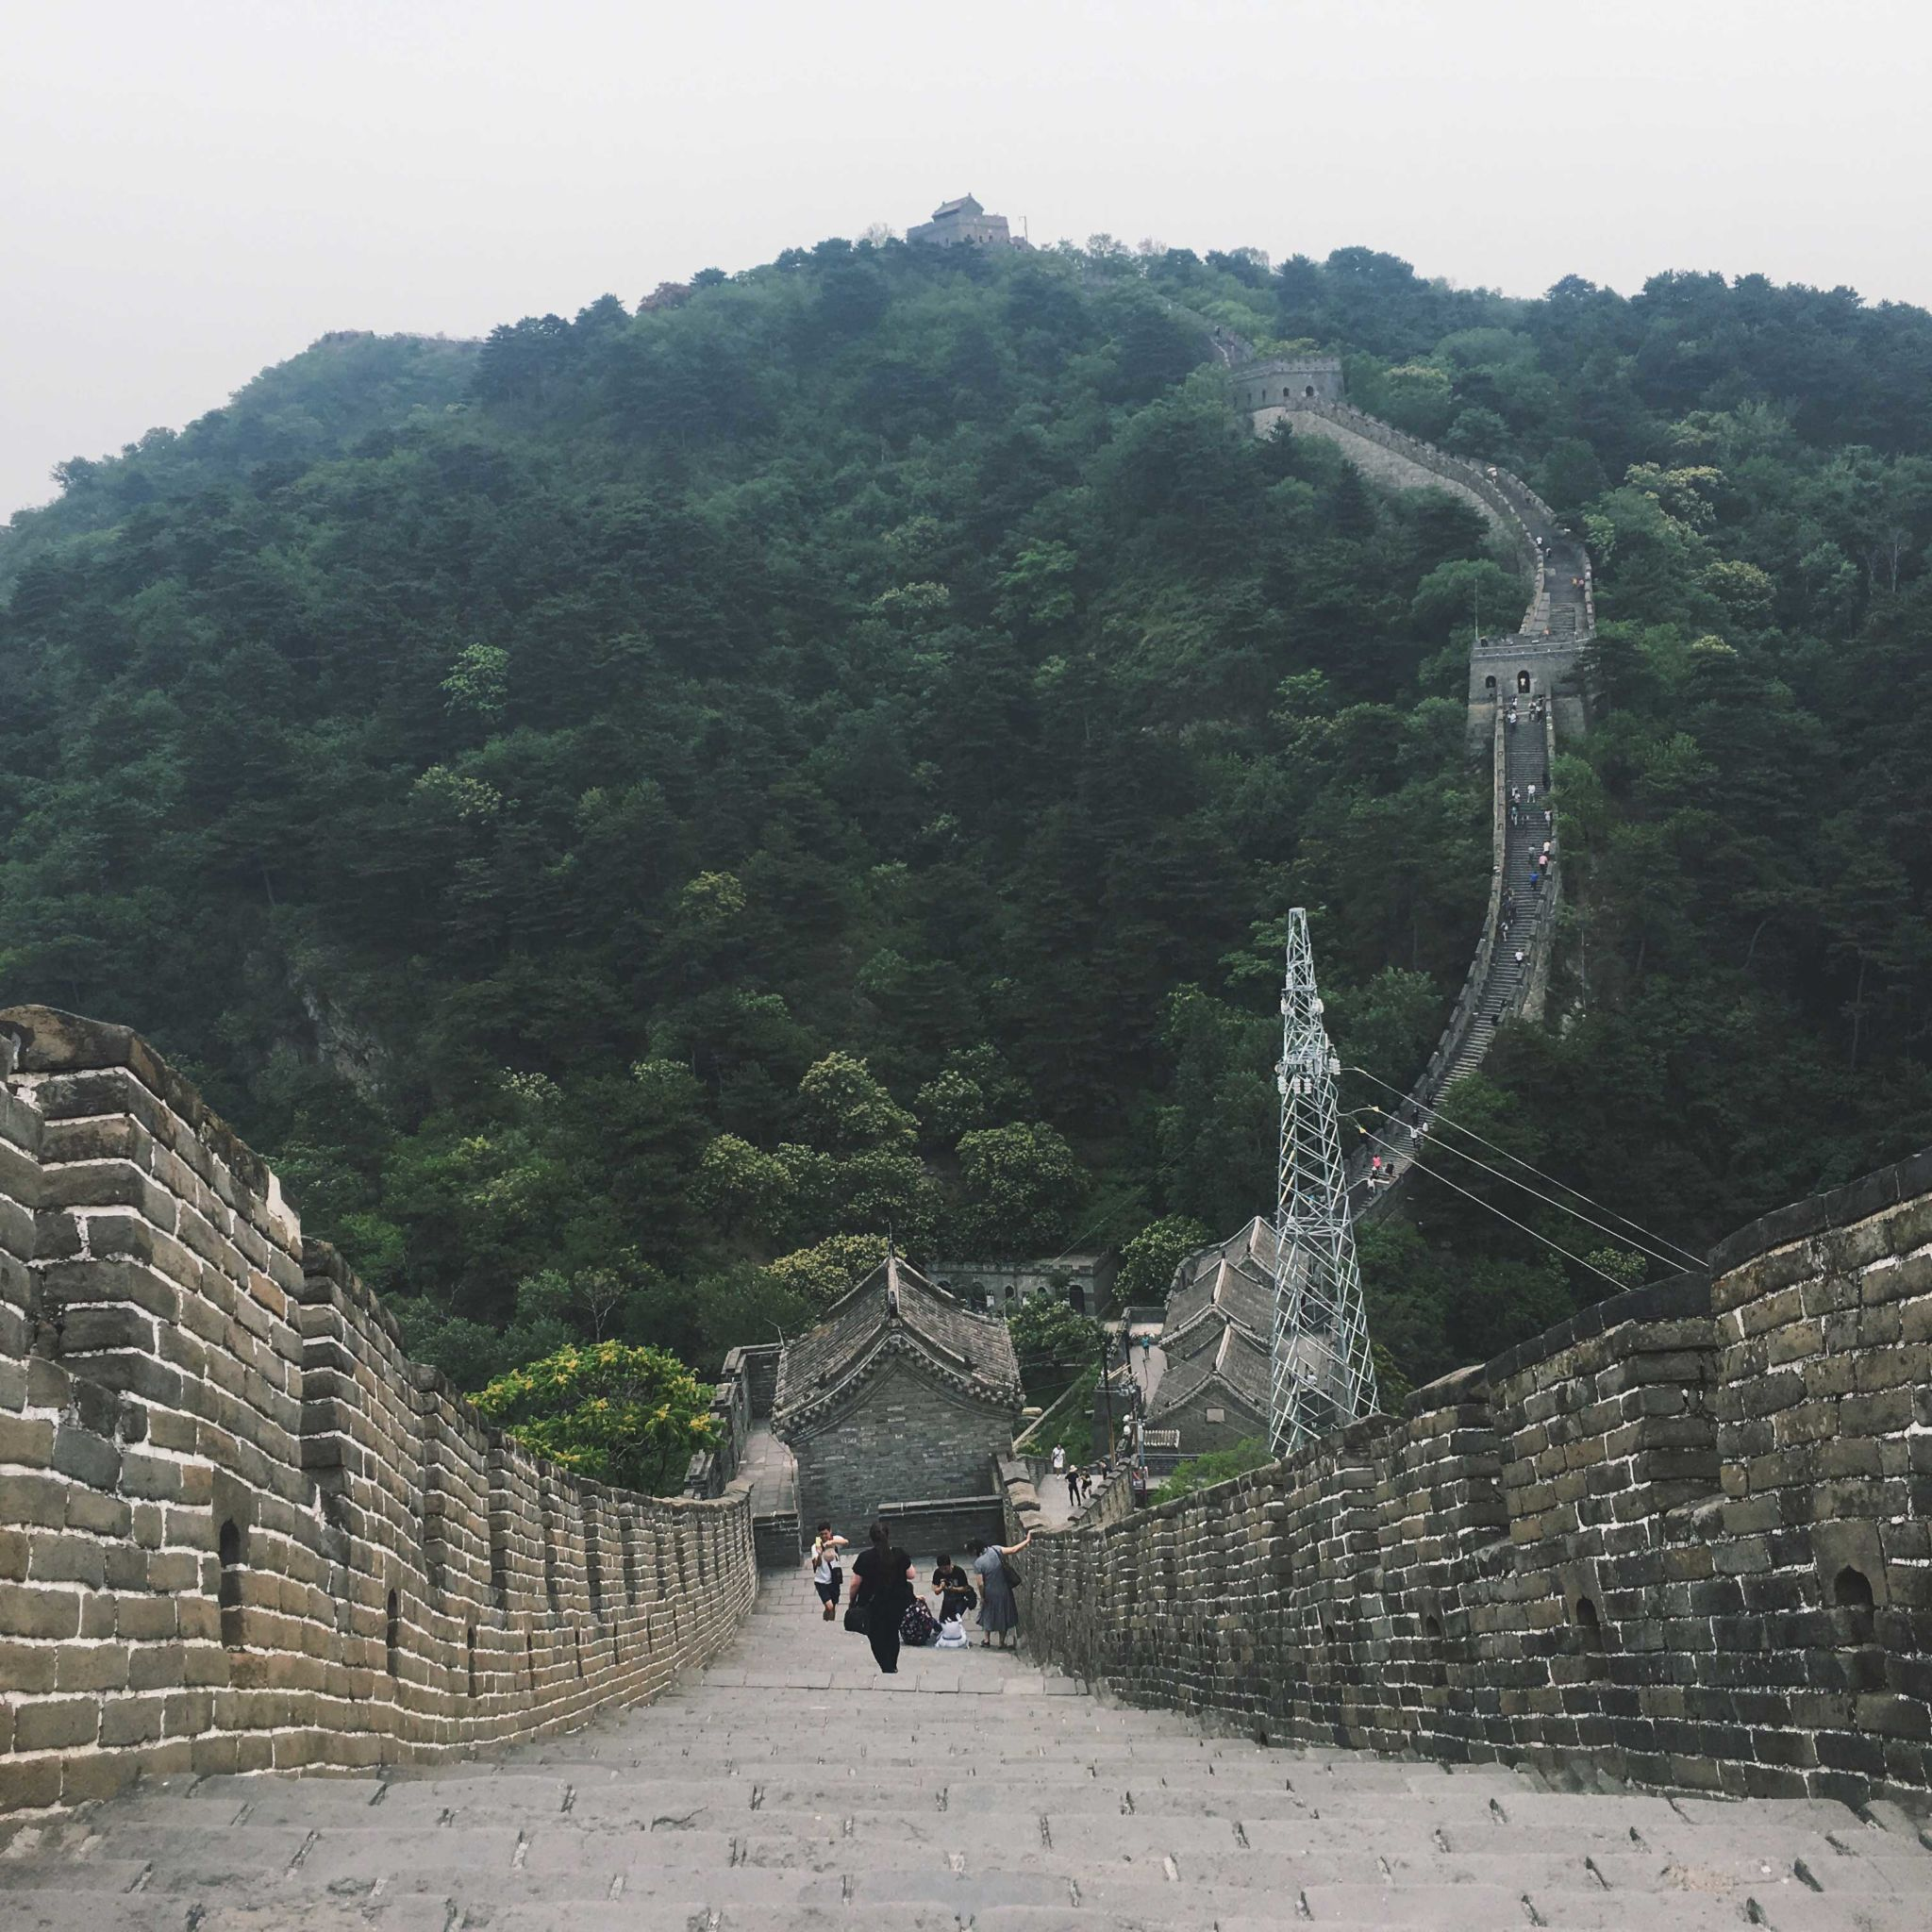 Great-wall-2-1.jpg